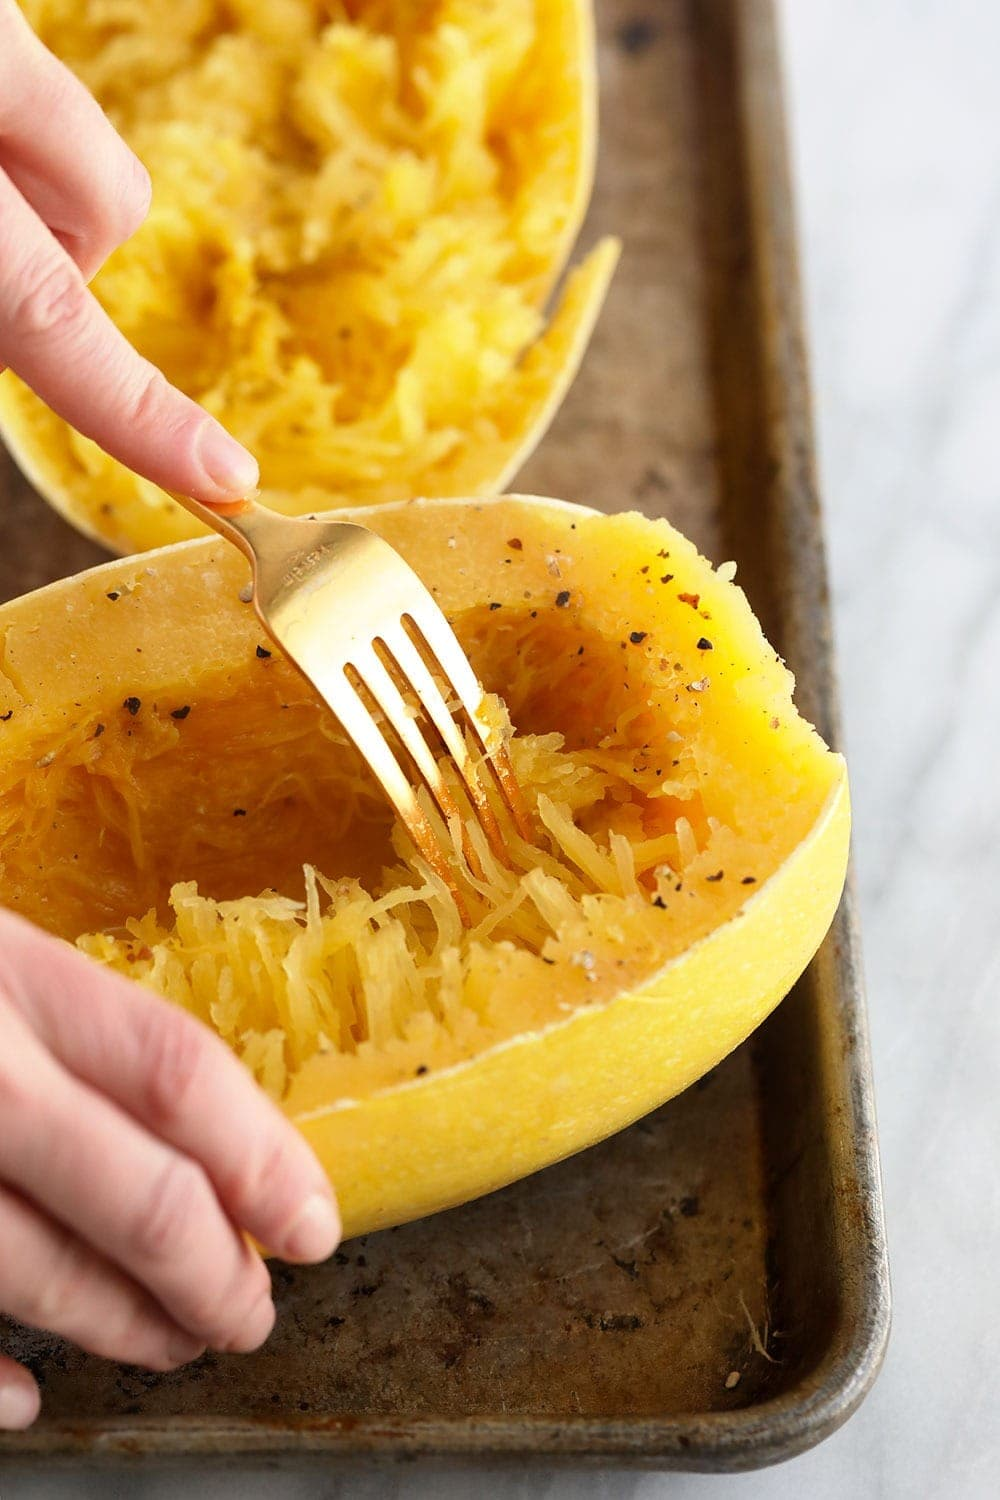 Softening spaghetti squash into noodles